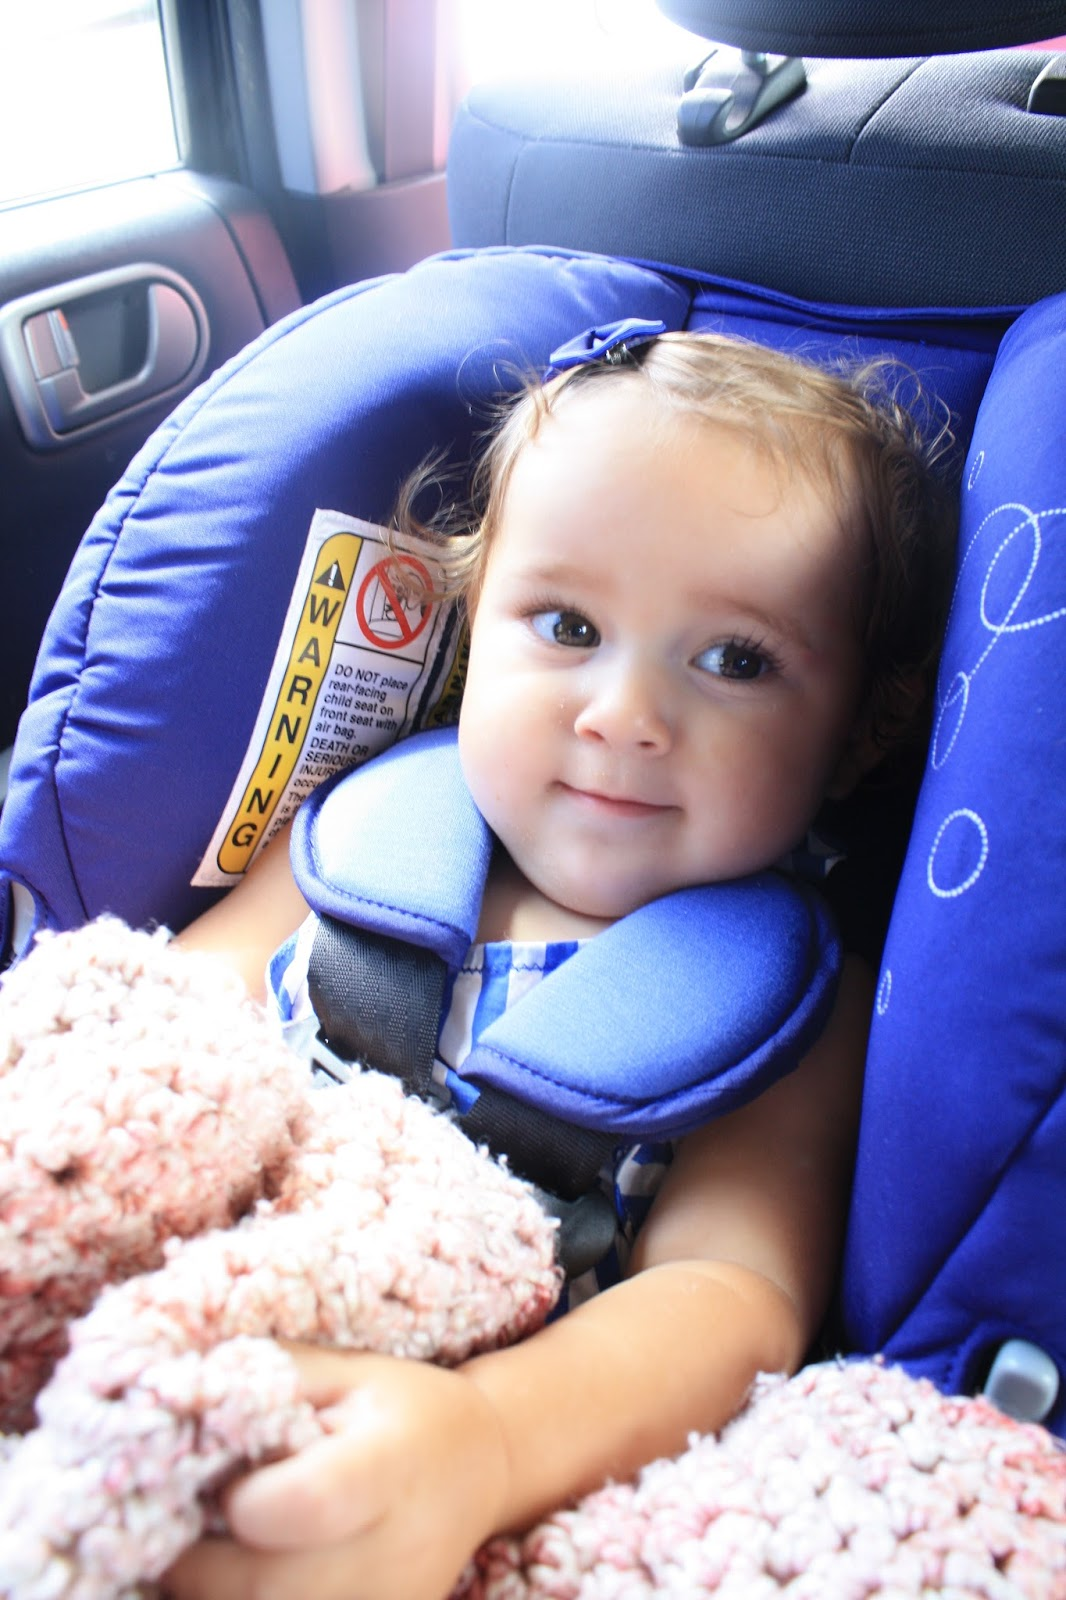 My Sweet Jane Has Always Been In The 90th Percentile For Weight So Having A Light Car Seat Makes SUCH Difference Us Transfers Easily From